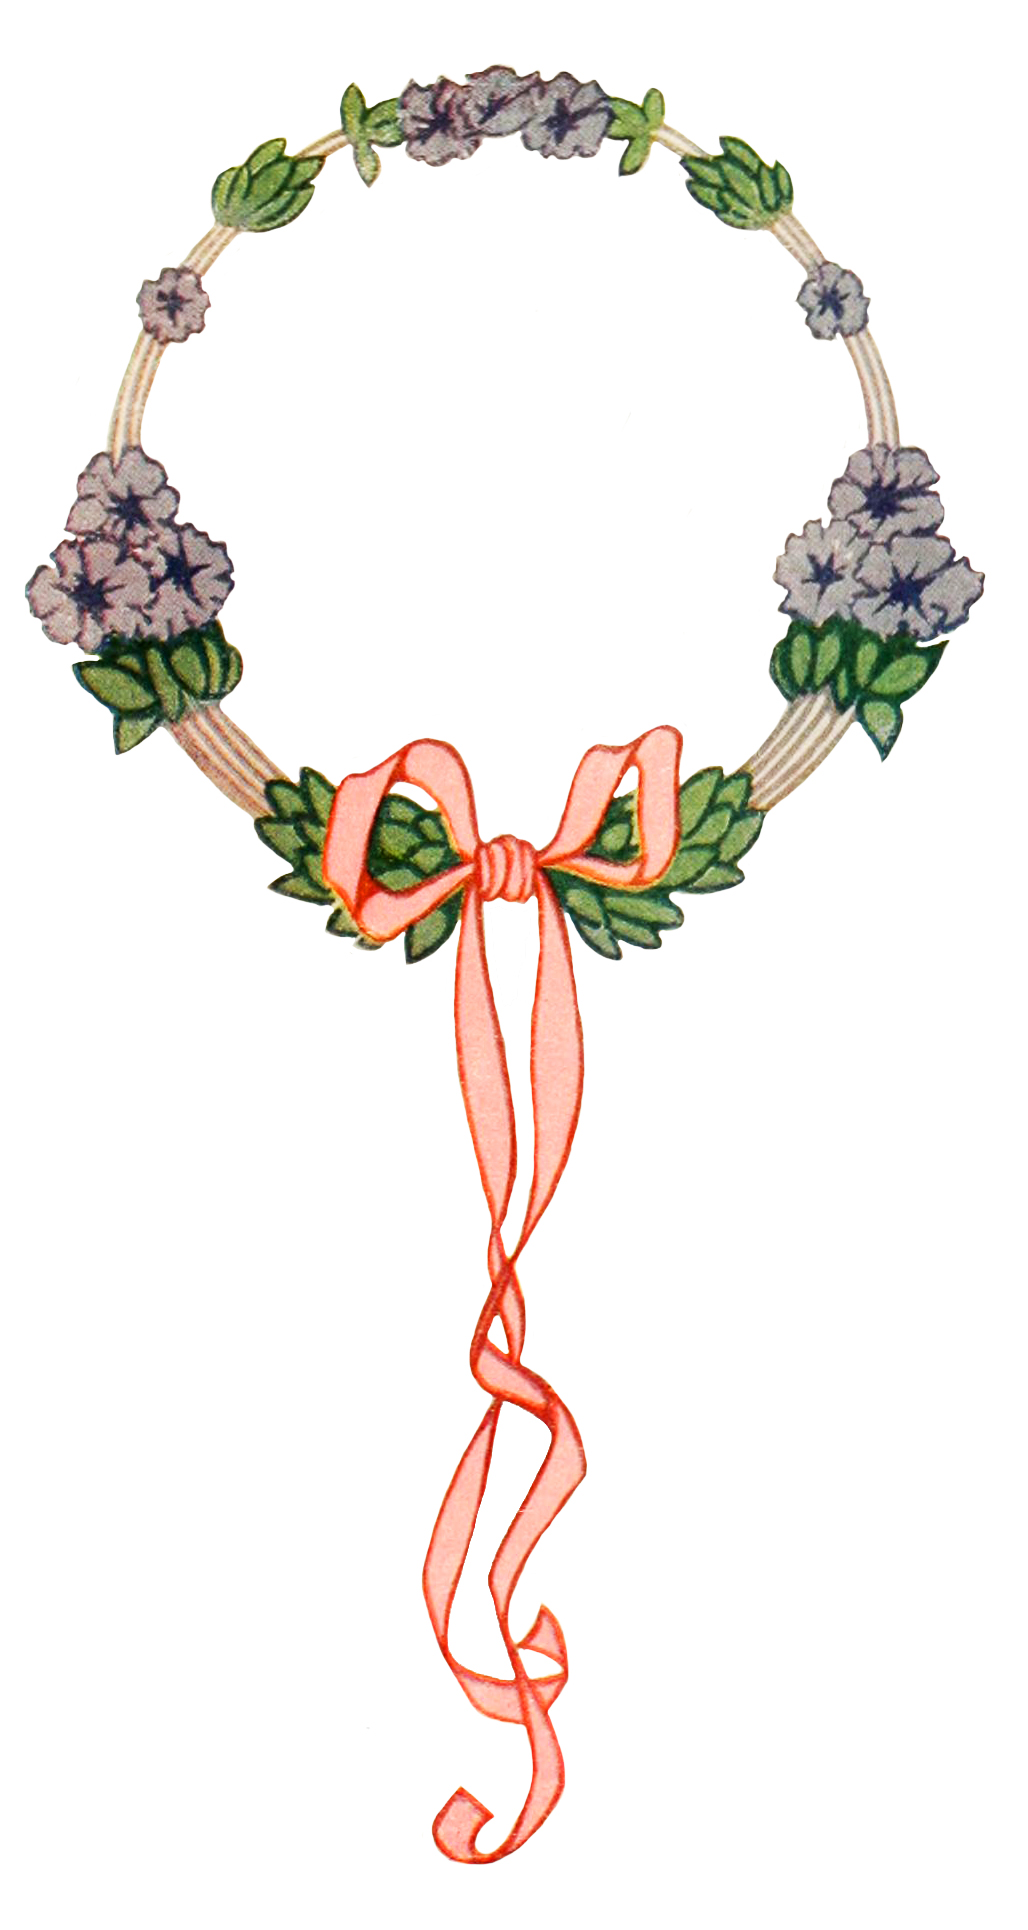 art nouveau flower wreath